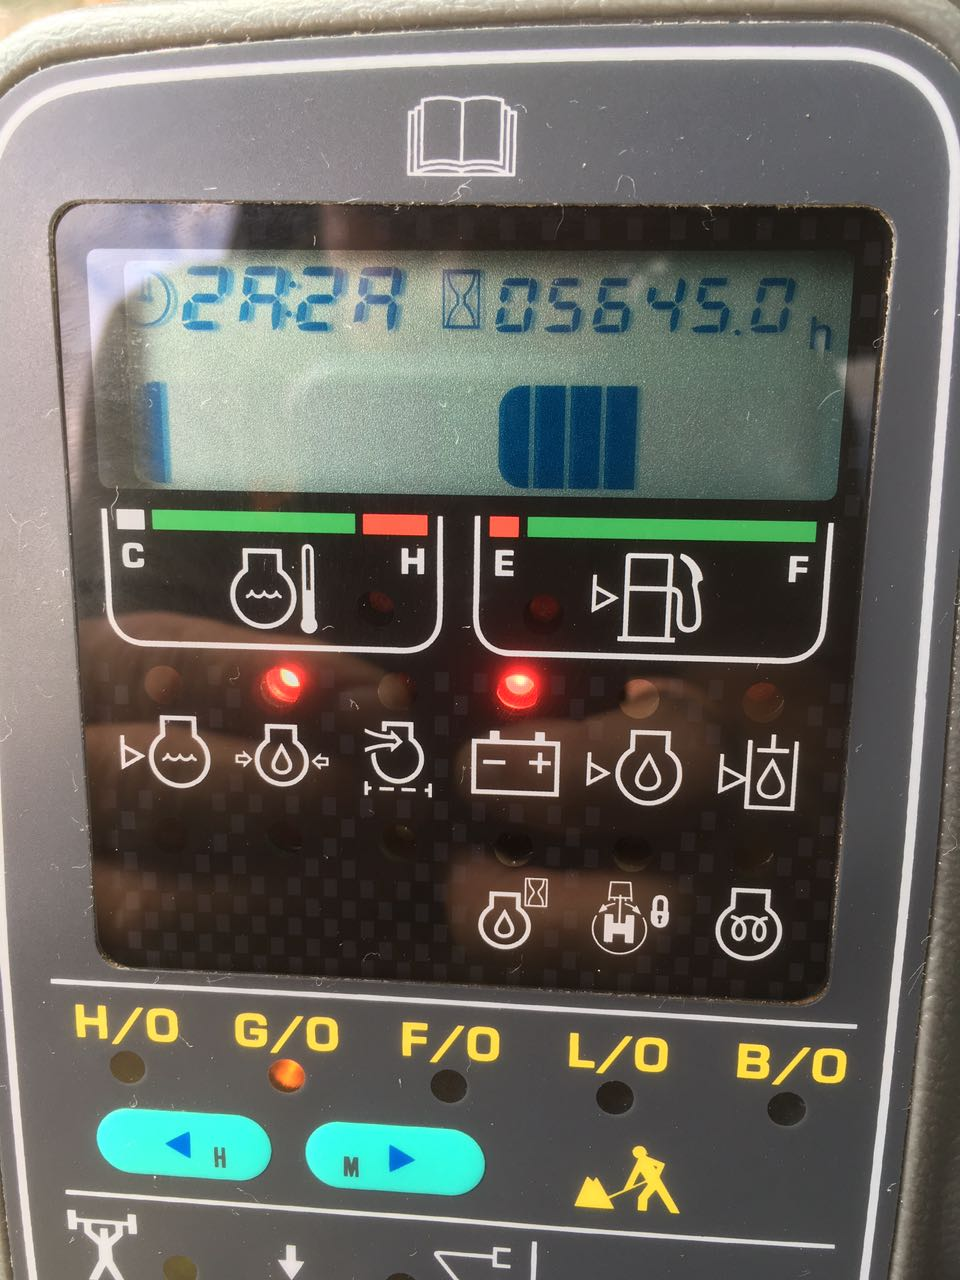 Komatsu PC200-6 Error Codes or Fault codes on the Monitor